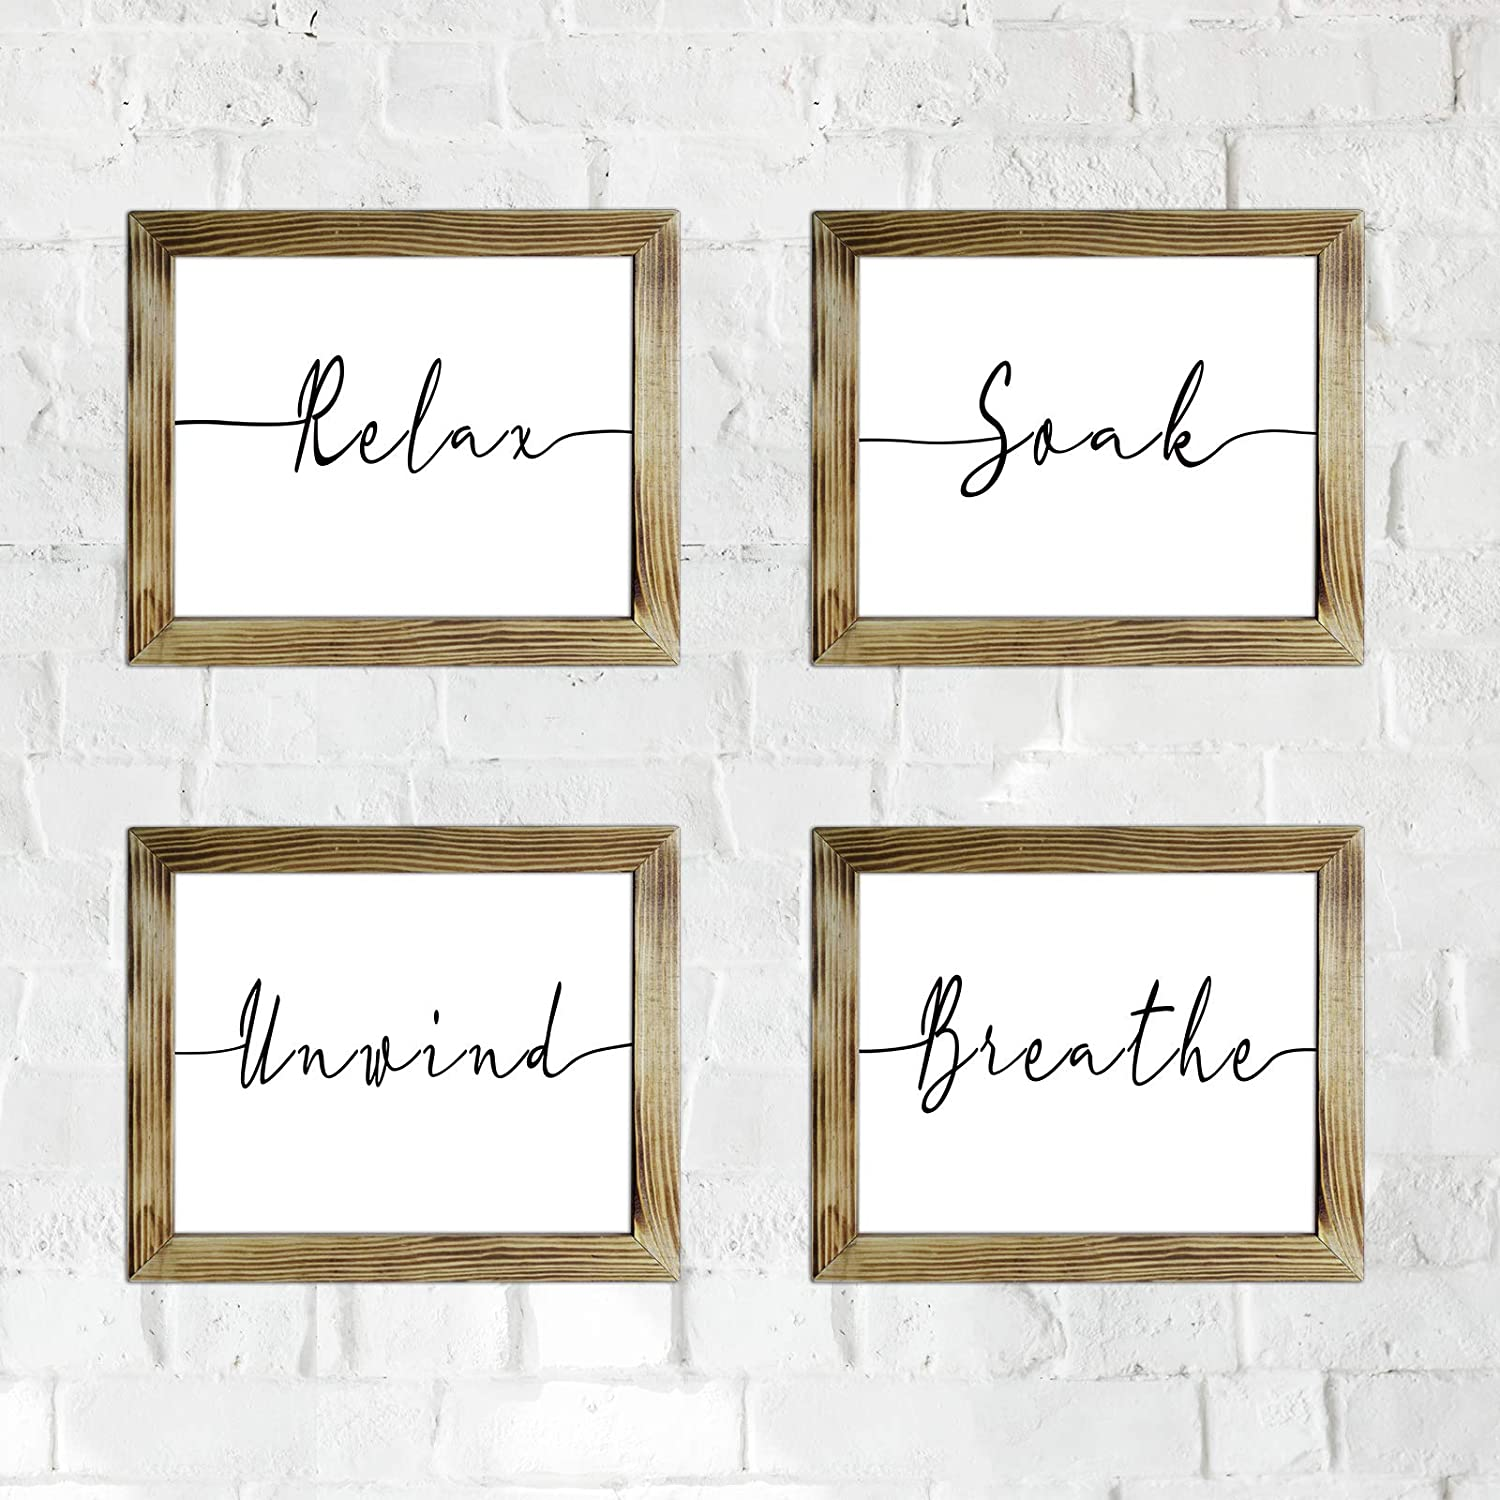 Relax/Soak/Unwind/Breathe Sign, Funny Bathroom Sign Rustic Frame Wall Decor Farmhouse Wall Sign with Solid Wood, 10x12 inch 4/Pack